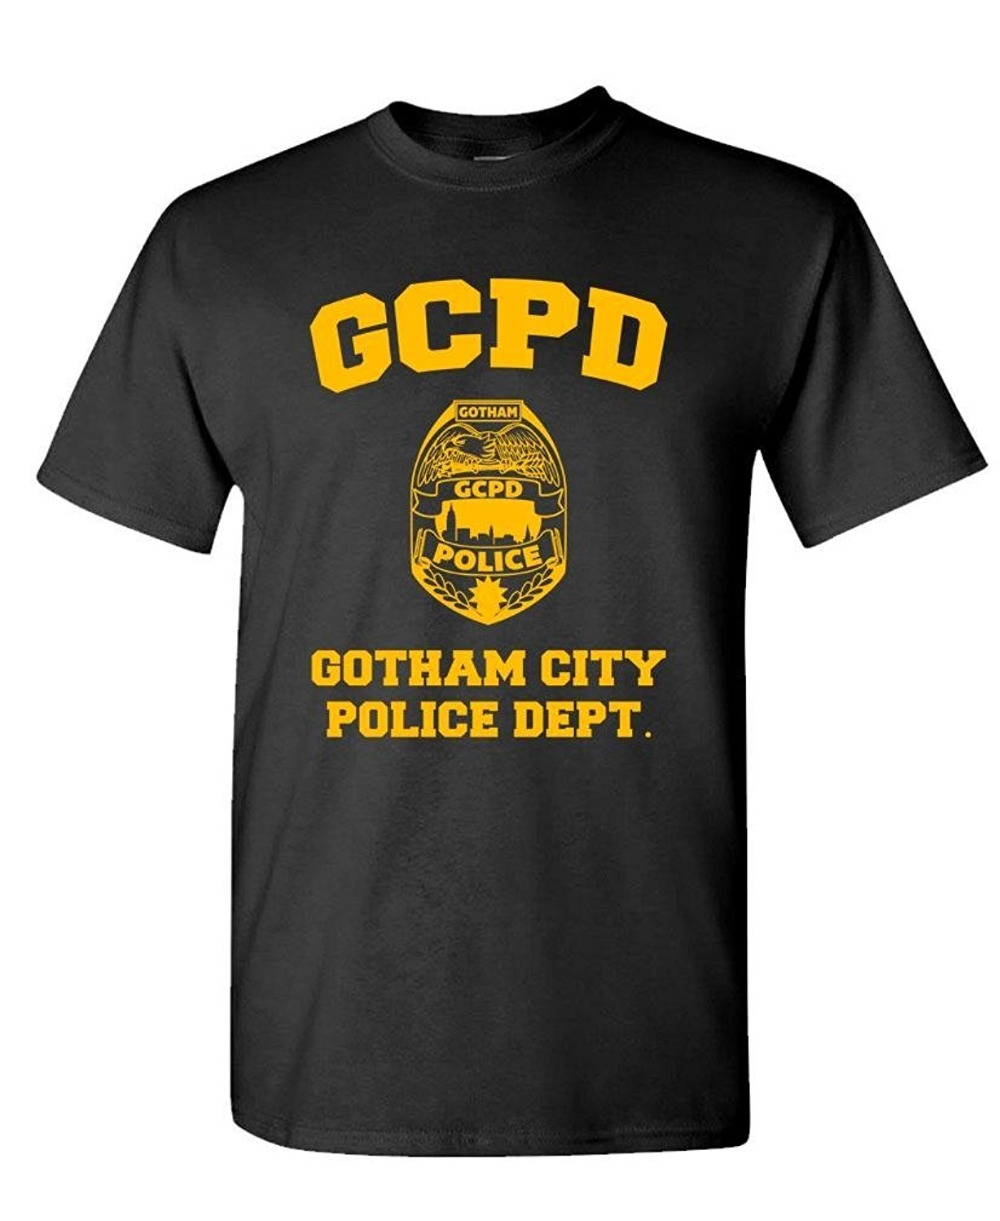 NEW Arrival GOTHAM CITY POLICE DEPT - arkham game - Men's Cotton T-Shirt Male Tees Casual Boy T-Shirt Tops Discounts T-shirts image